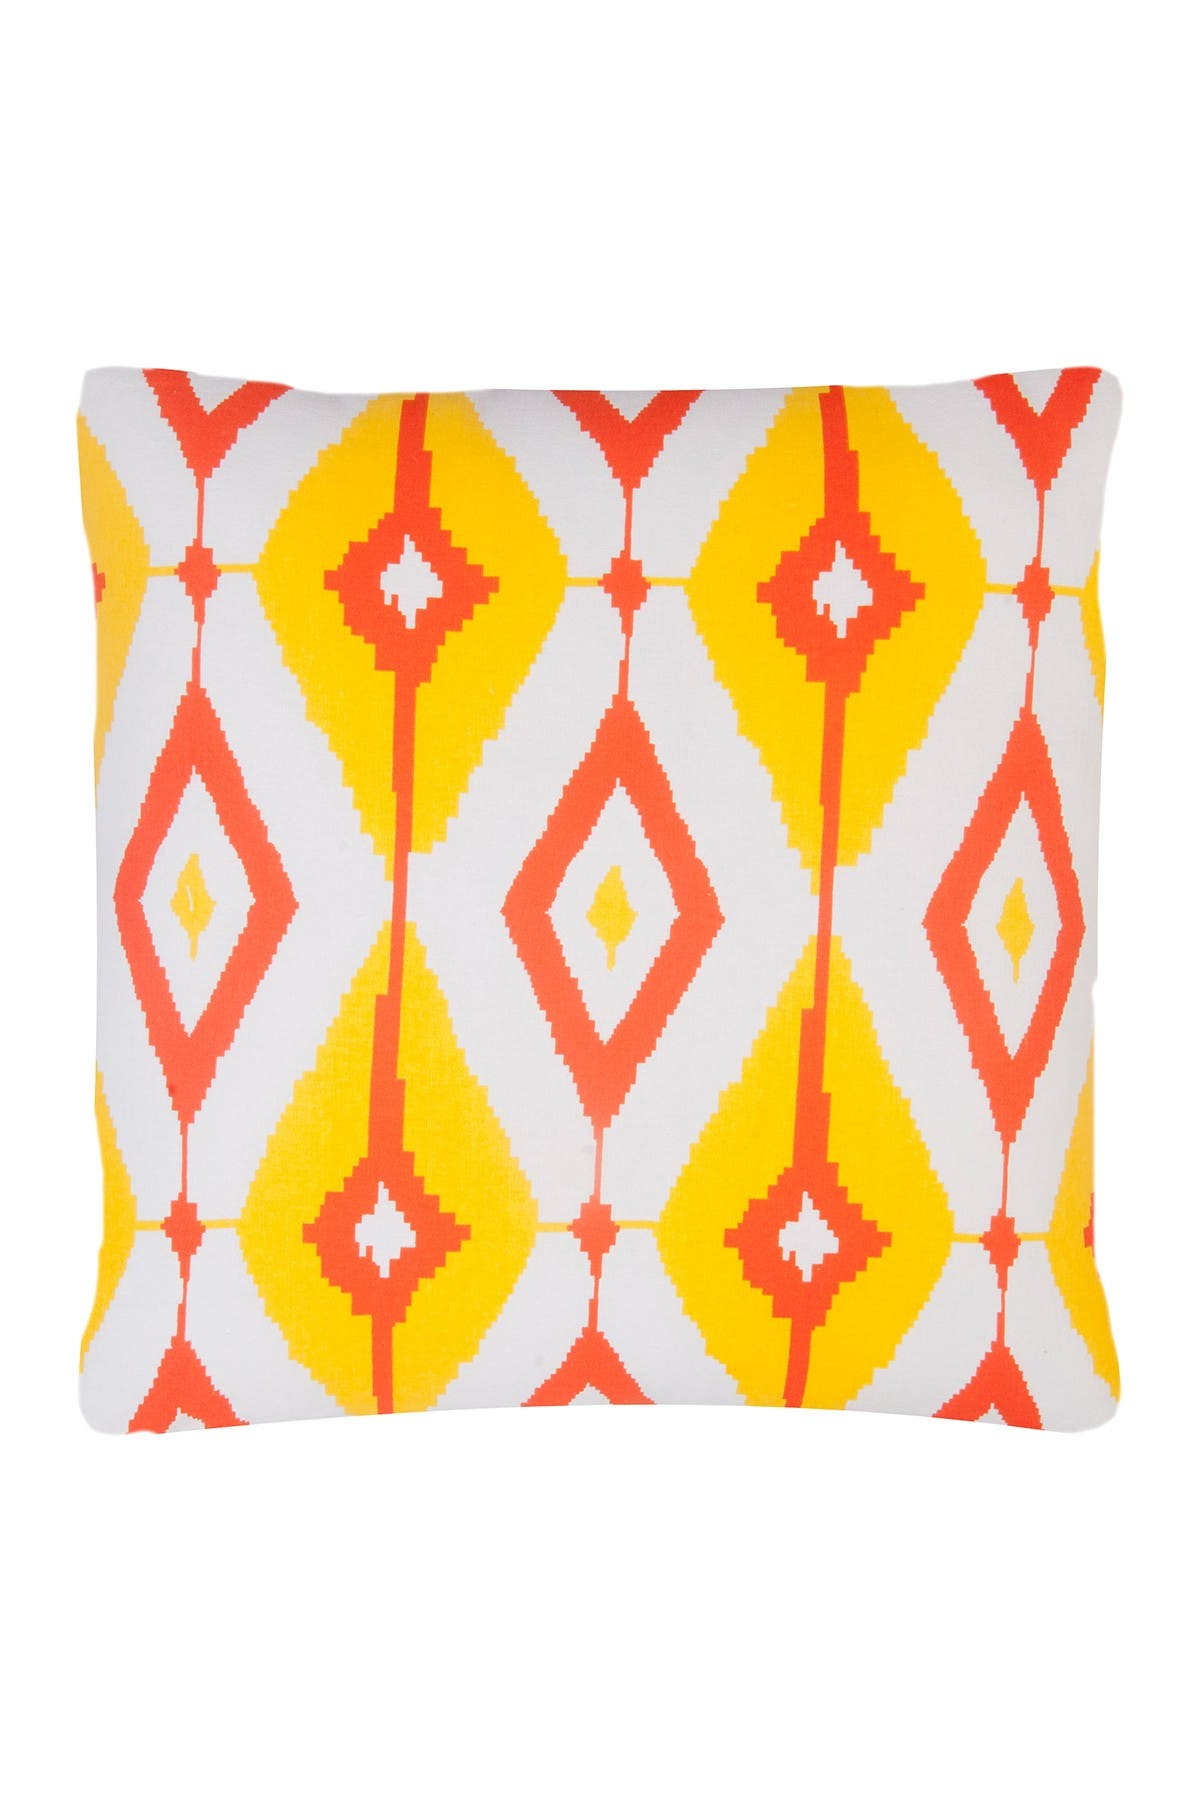 Divine Home Yellow Orange Helios Throw Pillow 20 X20 Nordstrom Rack